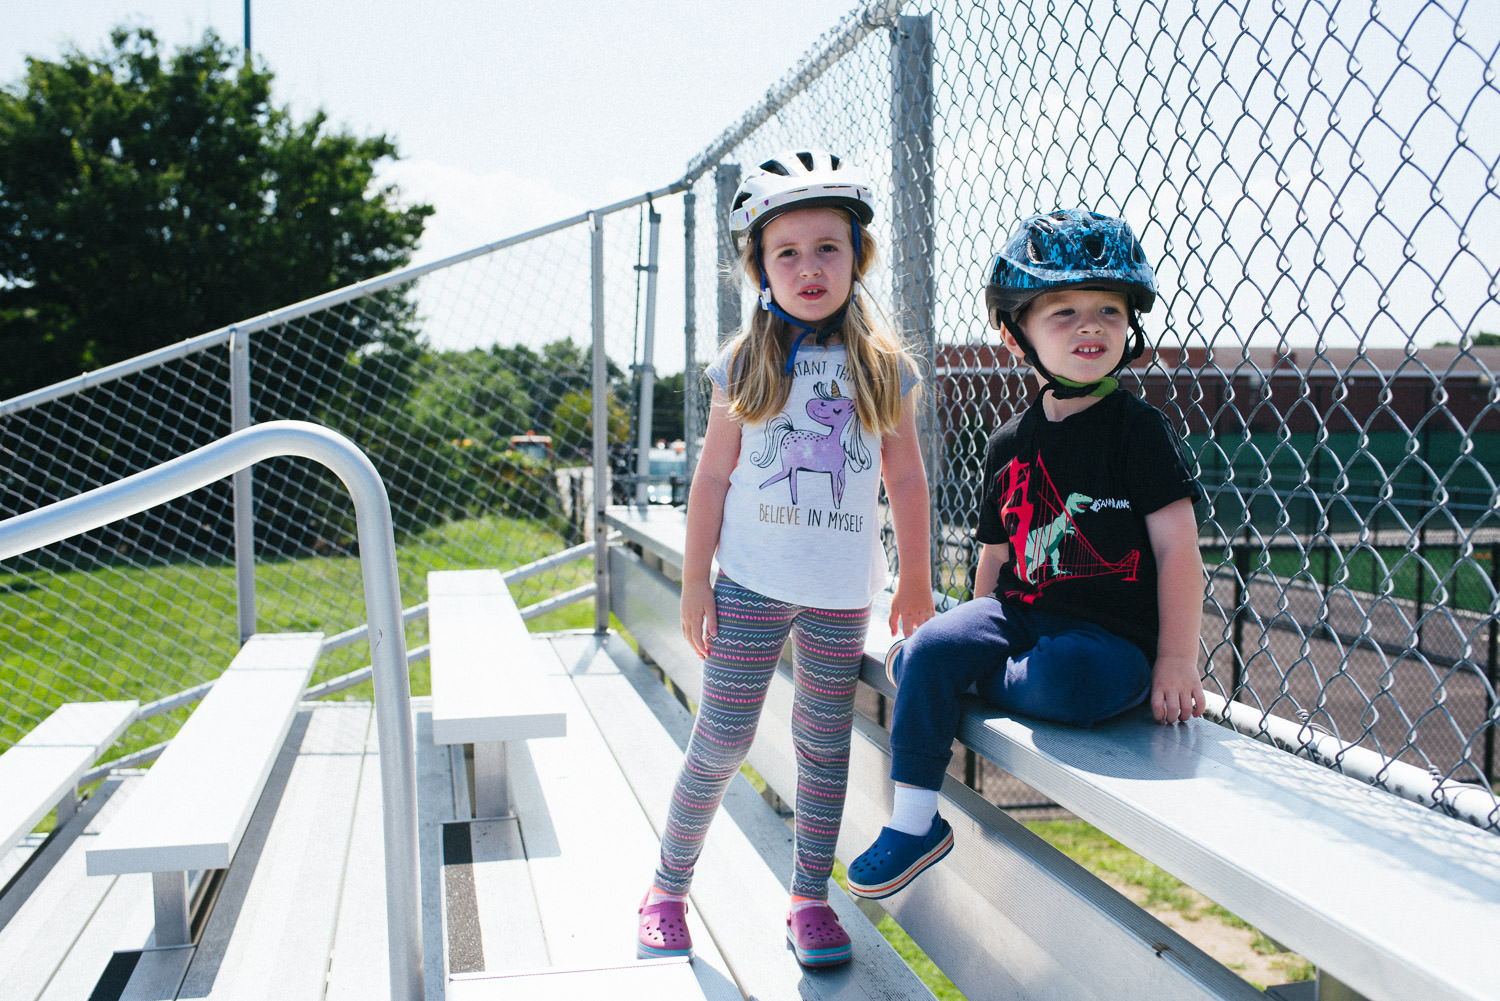 A brother and sister sit atop the bleachers.